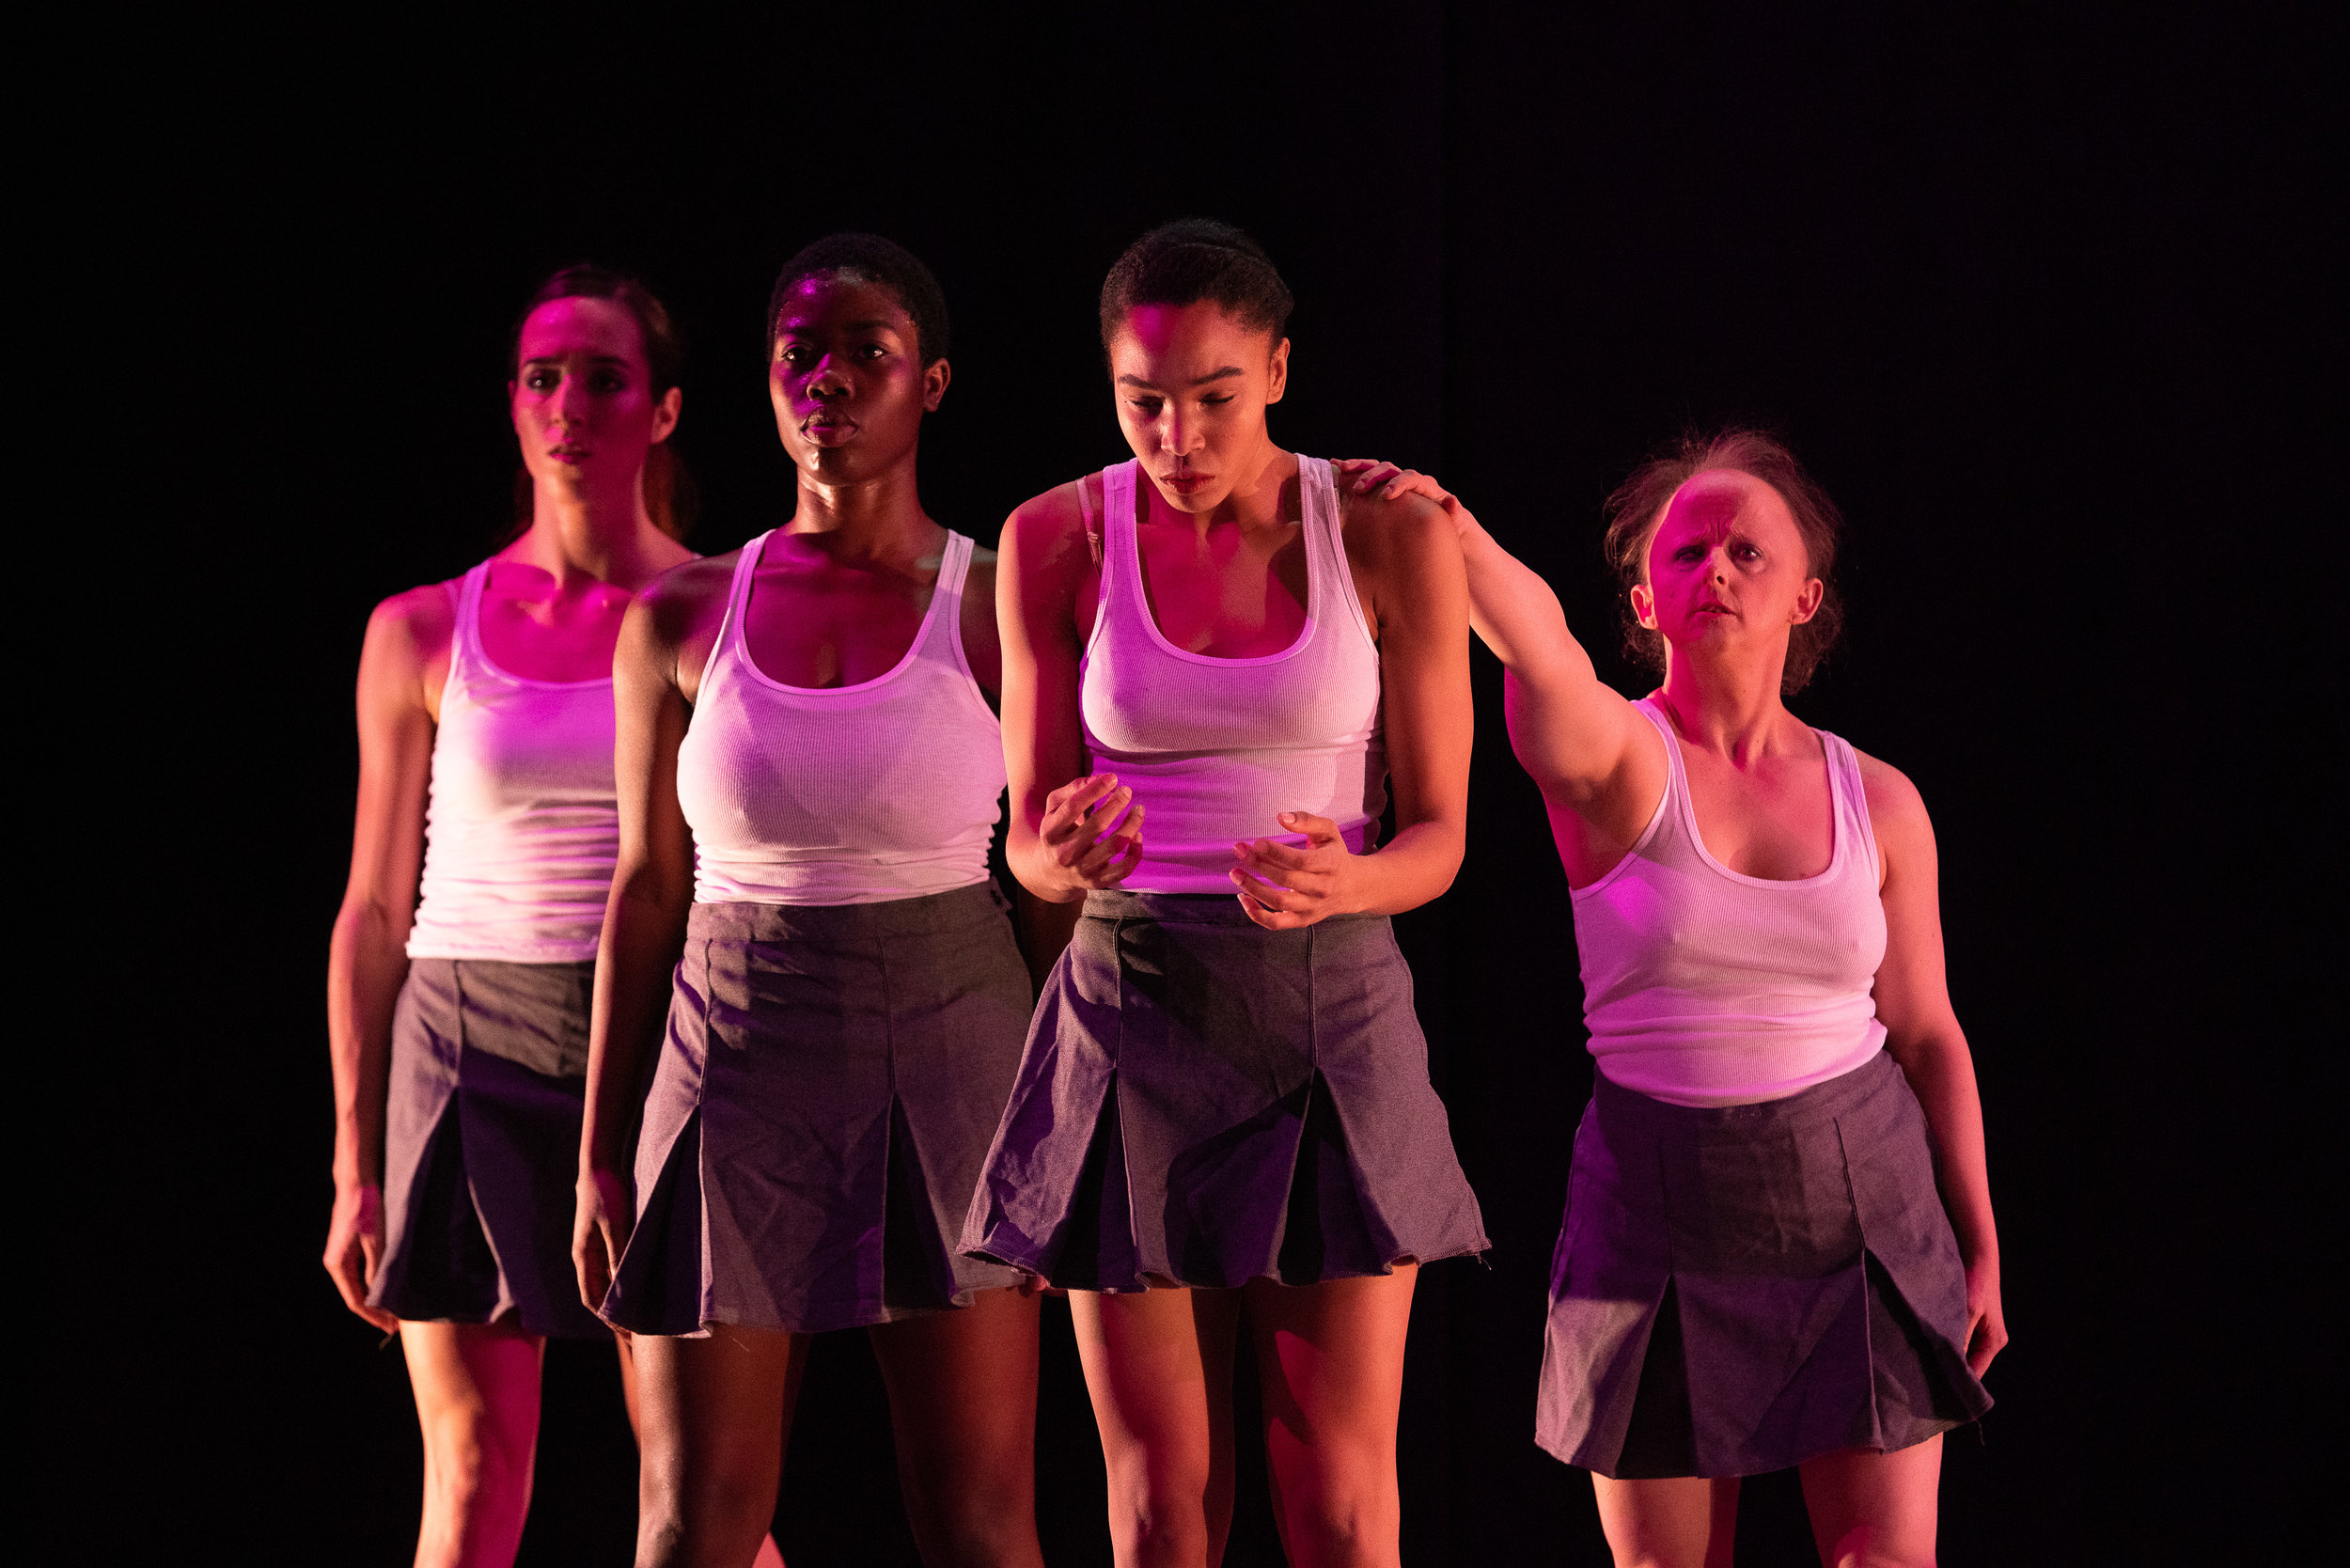 Sshhh:   Four women in grey school uniform skirts and white tank tops form a clump while one dancer reaches out to one of the women who is contracting her shoulders with her hands held in fists and looking down. Photo: Steven Pisano